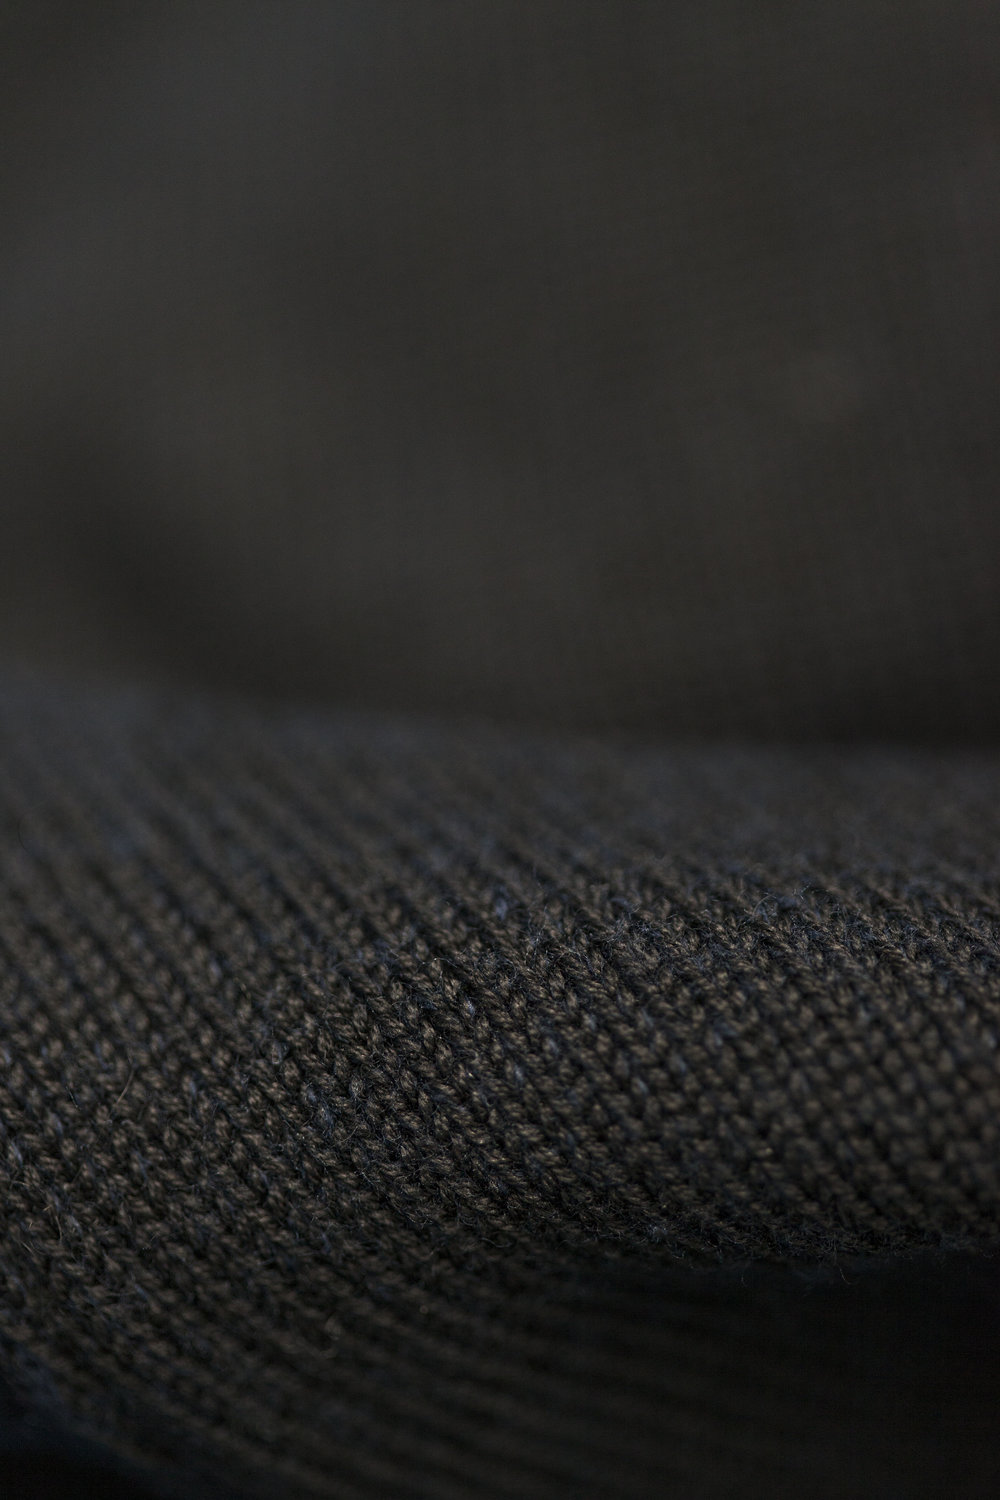 A navy inner side in mercerized cotton where as the black surface is wool. This both creates a comfortable wearability but also a beautiful shading of the colors. Used on style Shade Knit